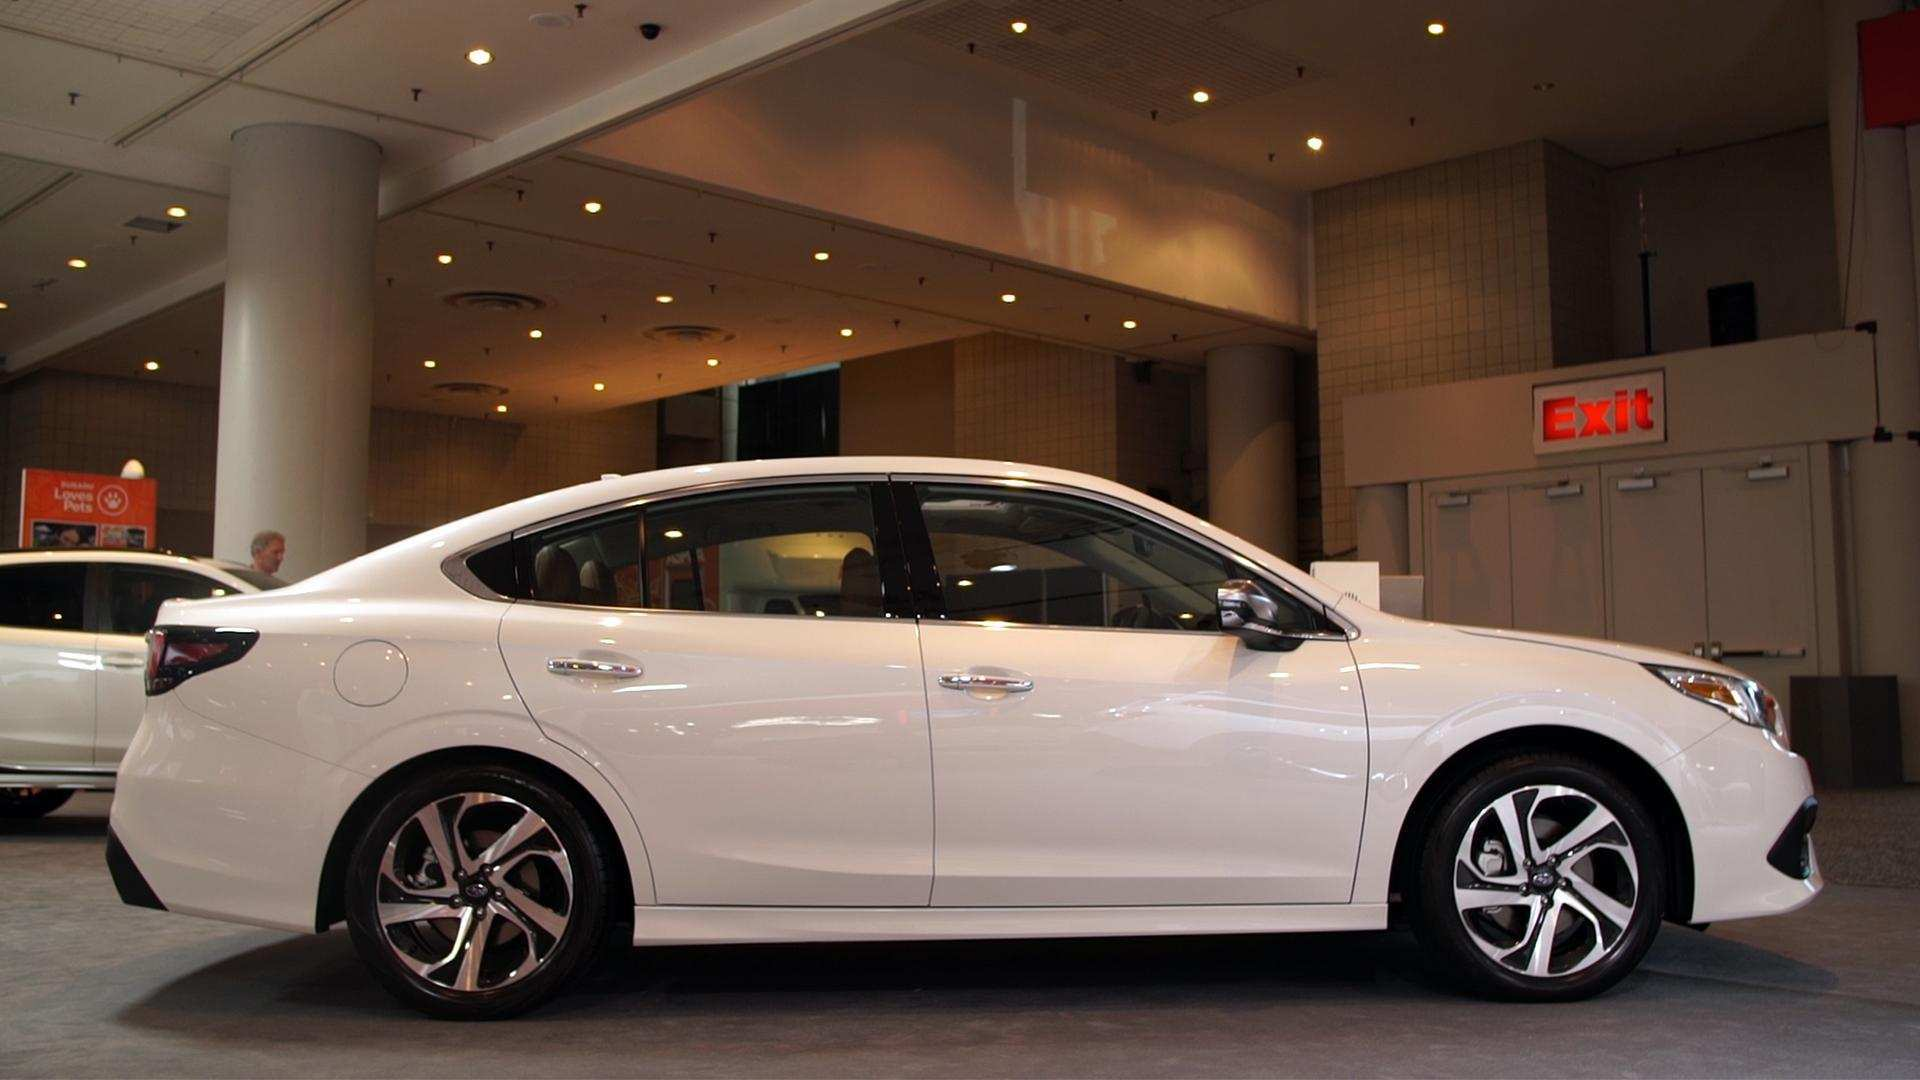 82 The Best 2020 Subaru Legacy Mpg Price Design And Review